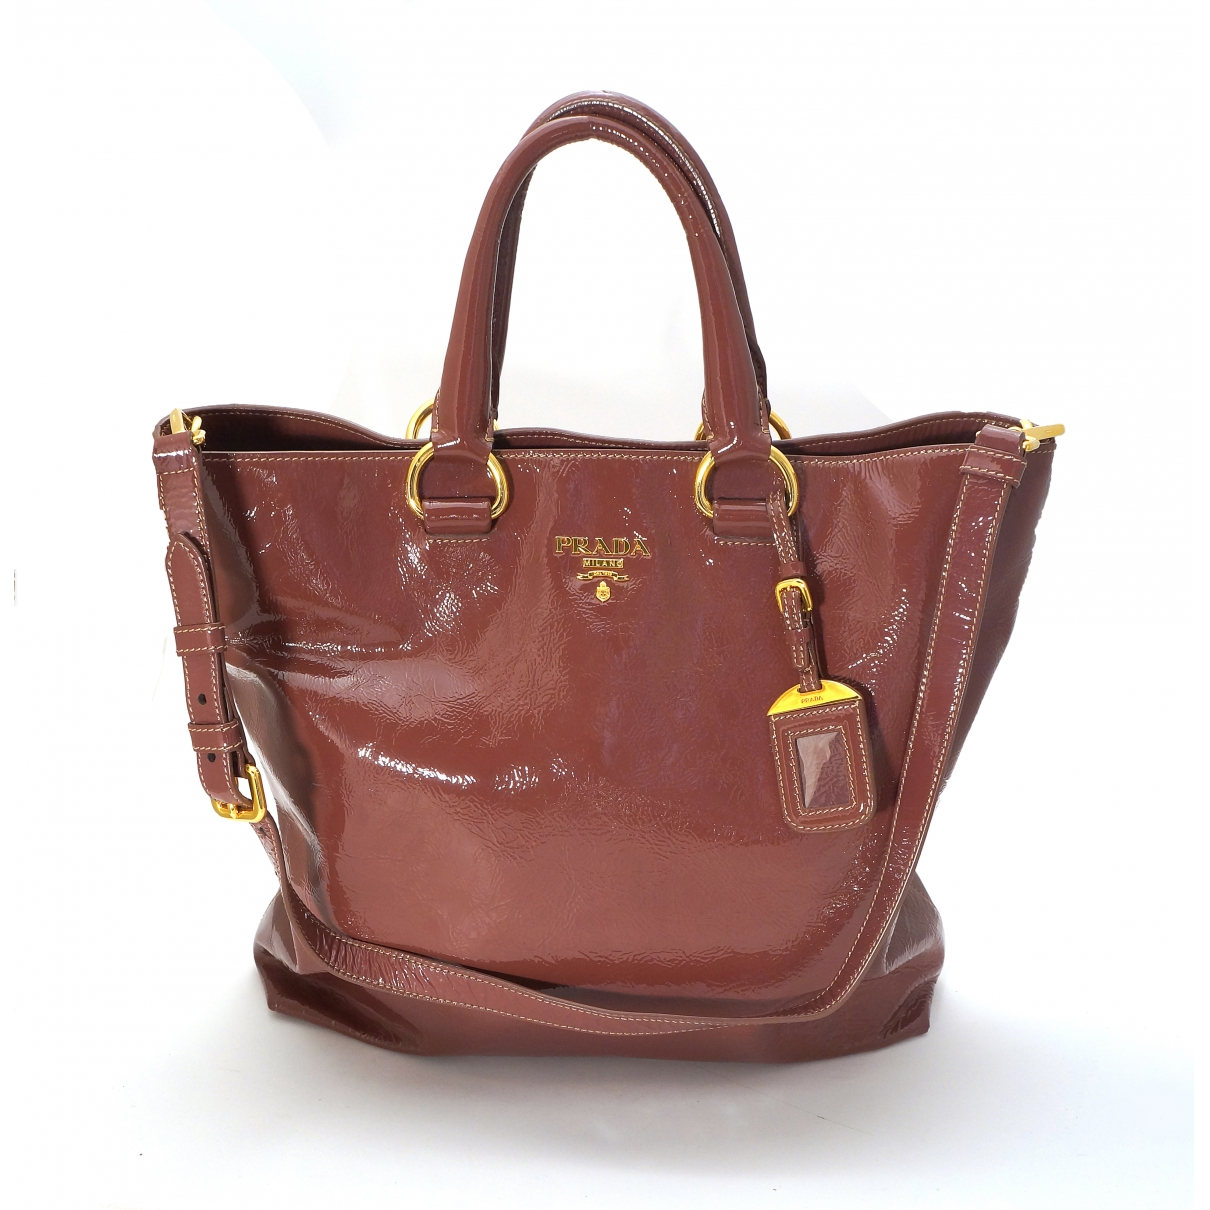 Prada \N Purple Patent leather handbag for Women \N